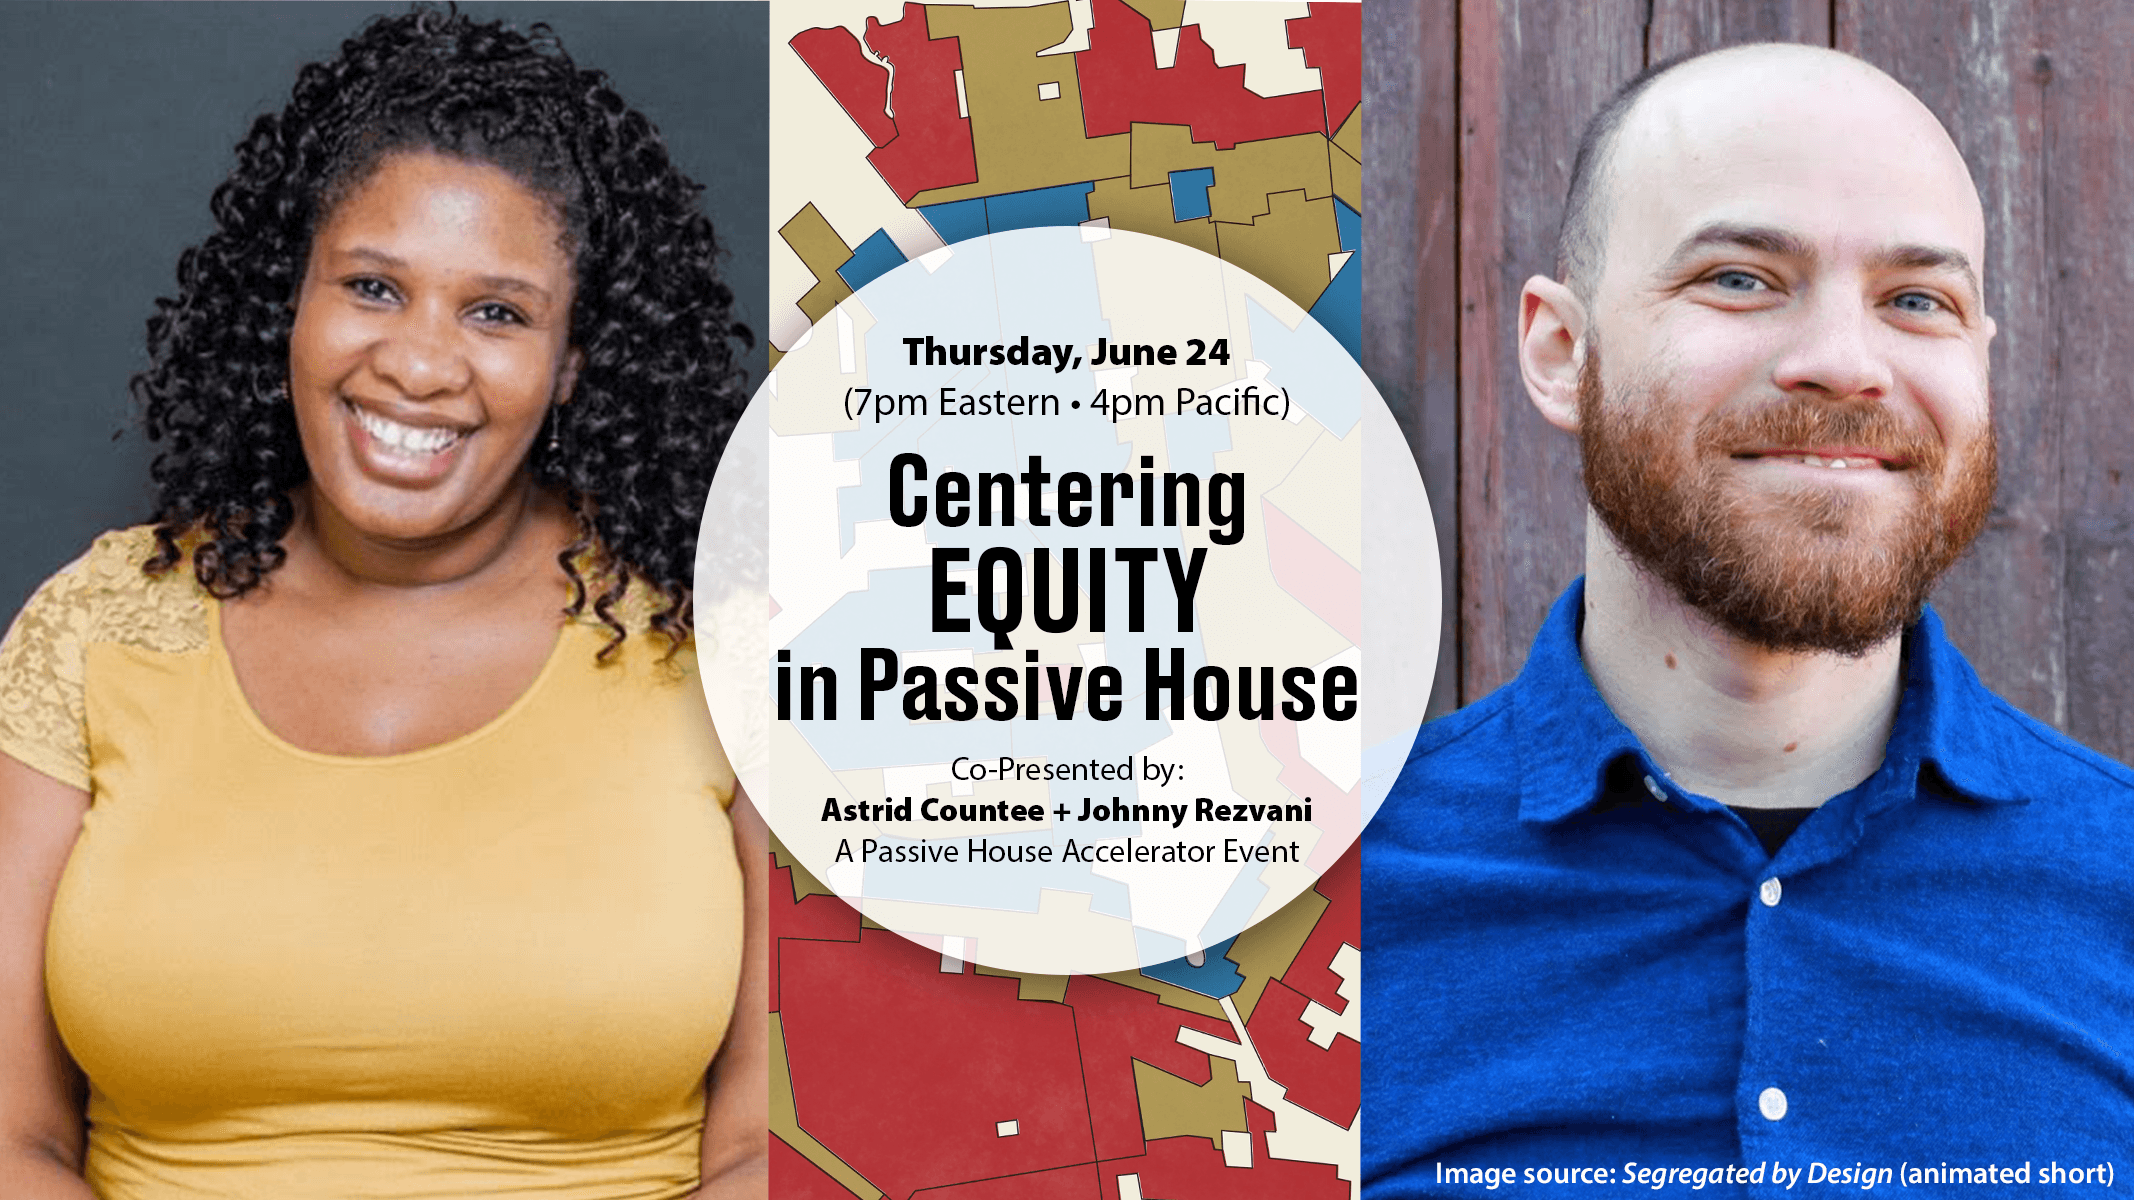 Centering Equity in Passive House